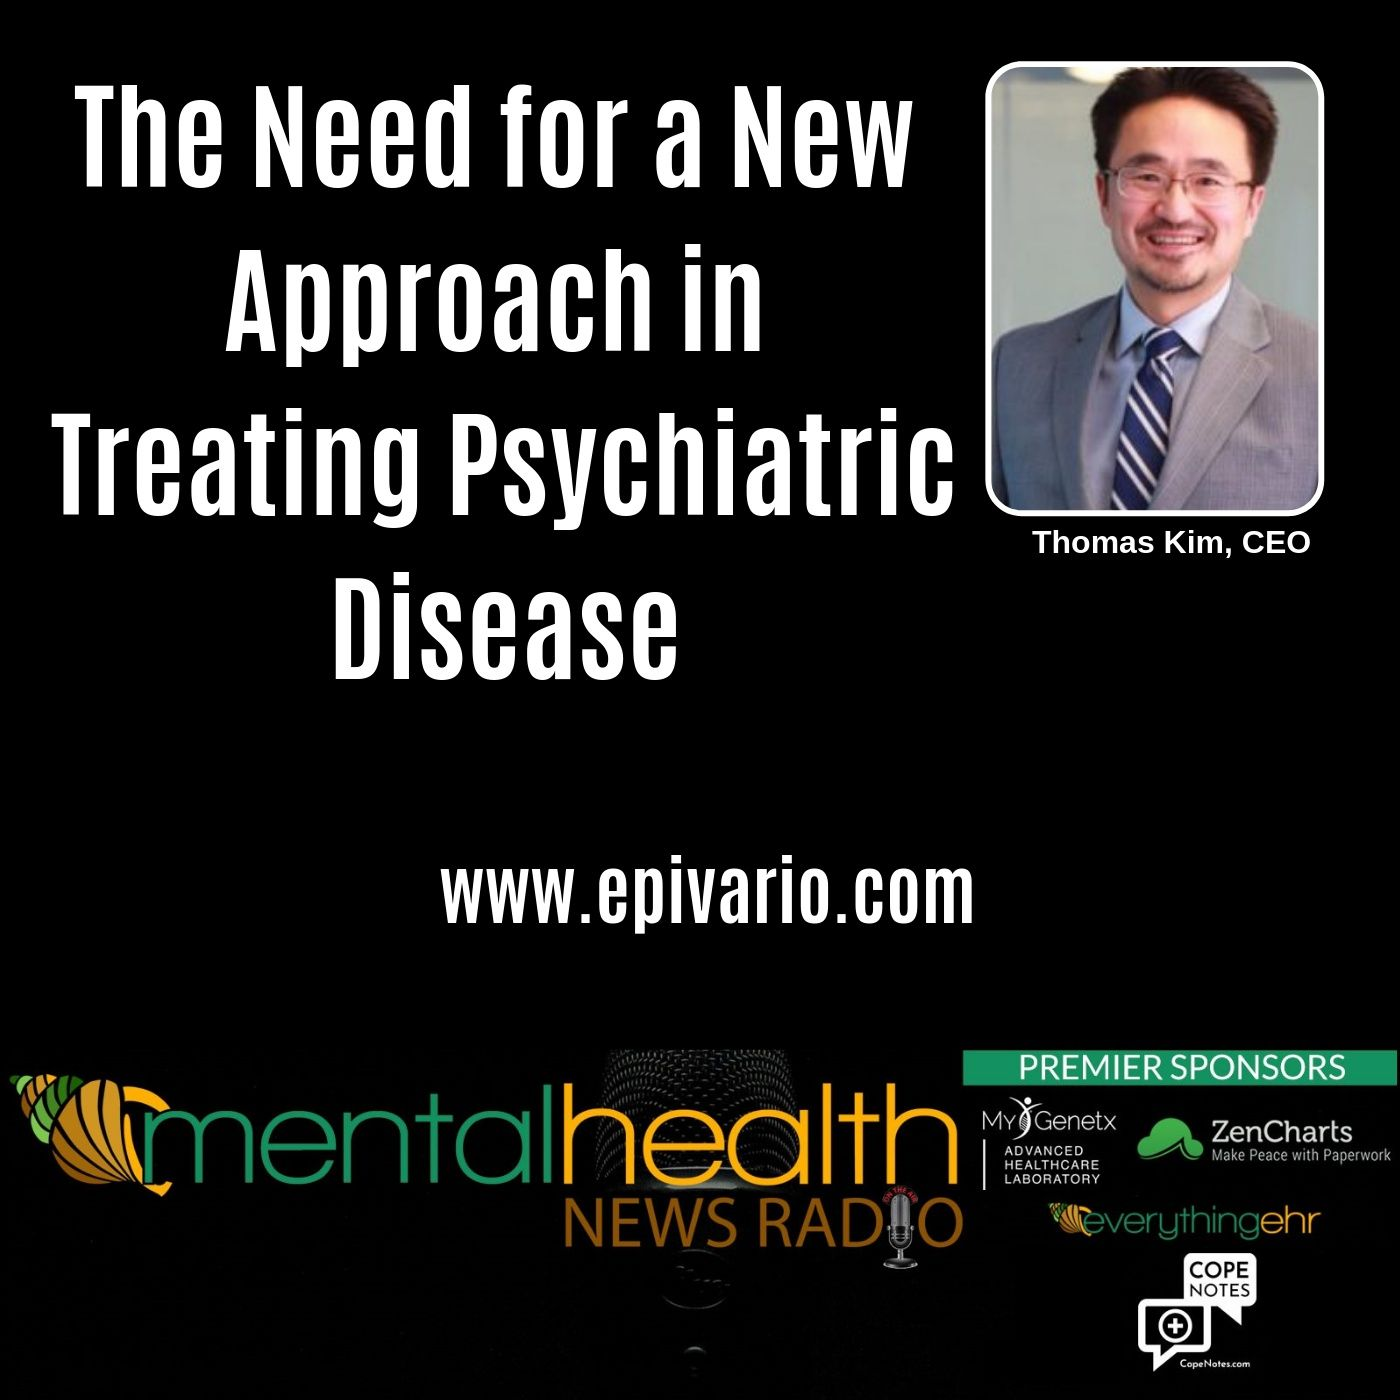 Mental Health News Radio - The Need for a New Approach in Treating Psychiatric Disease